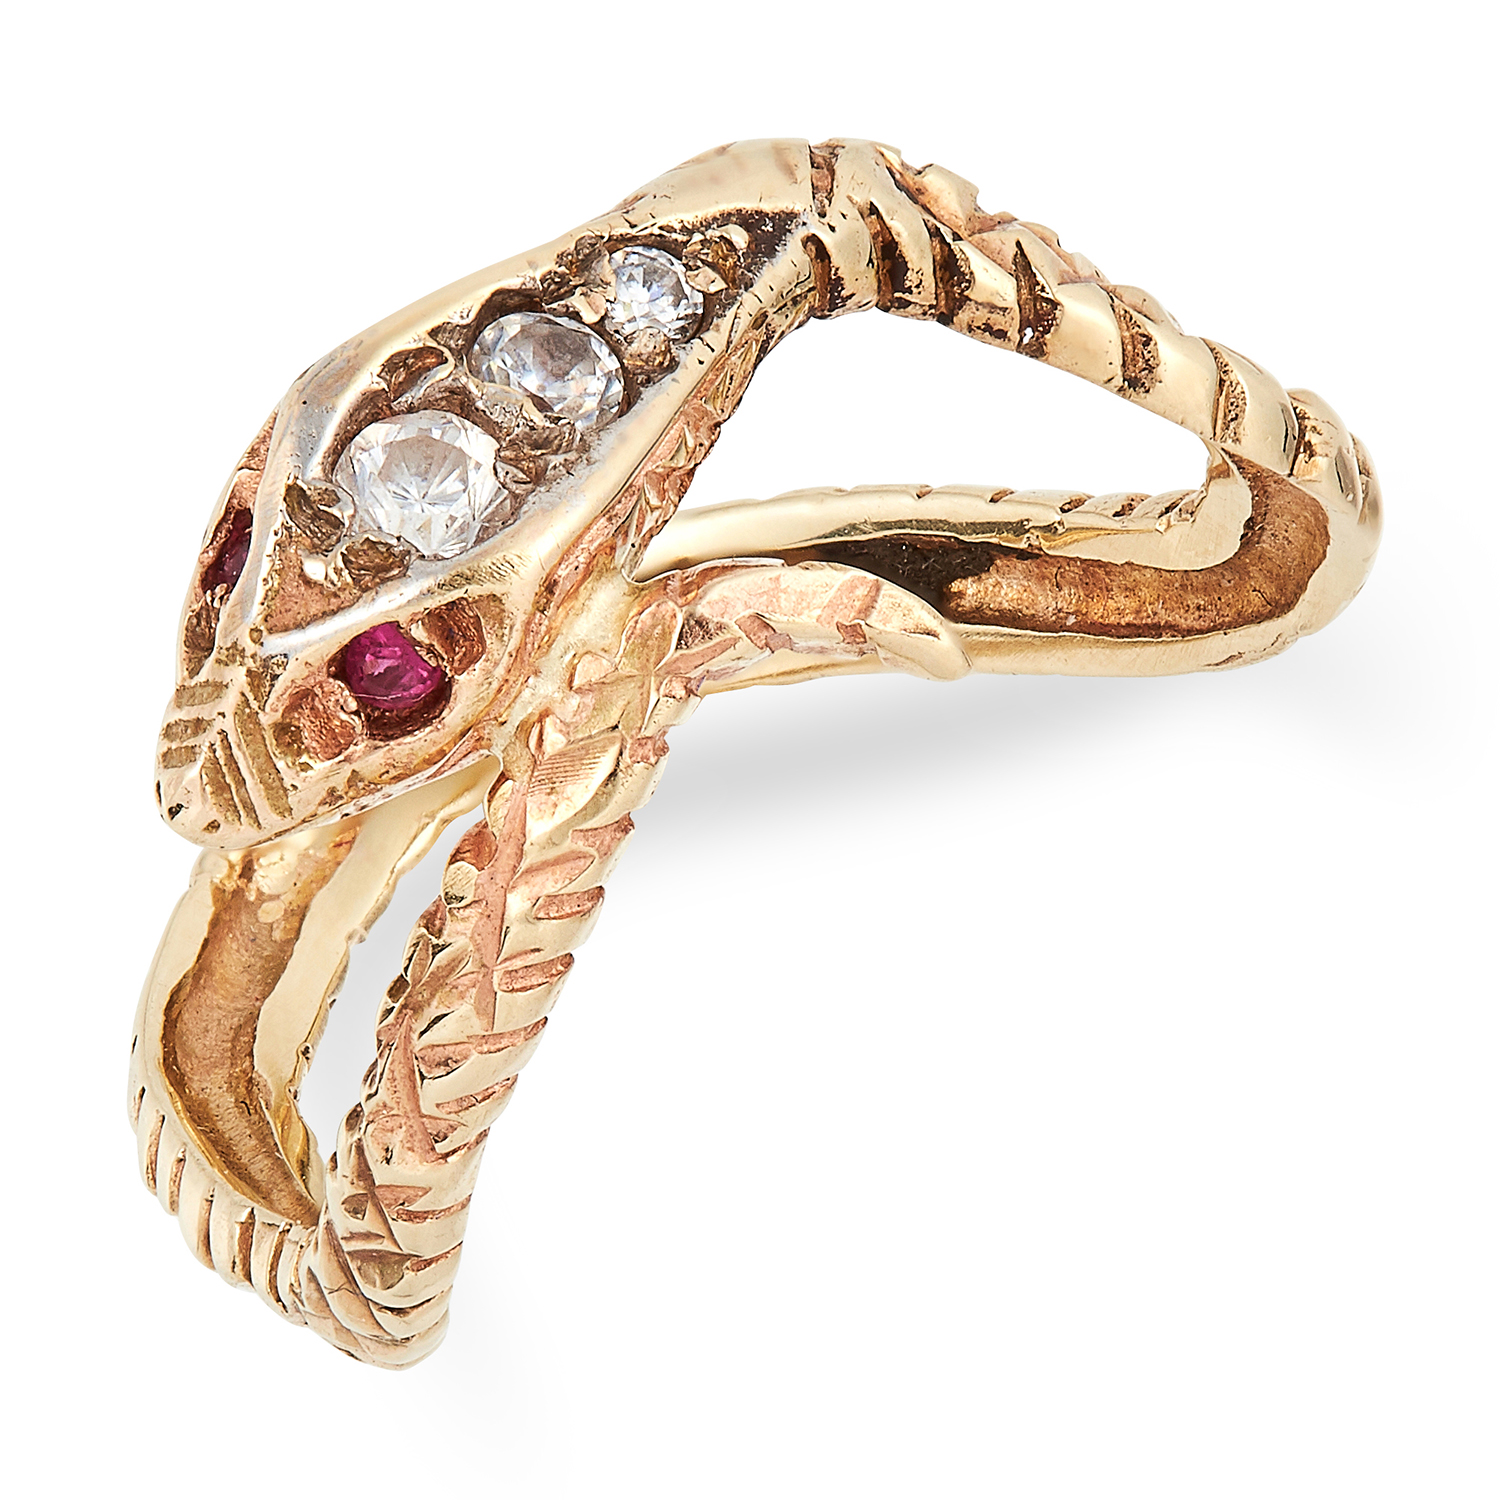 Los 18 - ANTIQUE RUBY SNAKE RING set with round cut rubies and white gemstones, size K / 5, 2.4g.